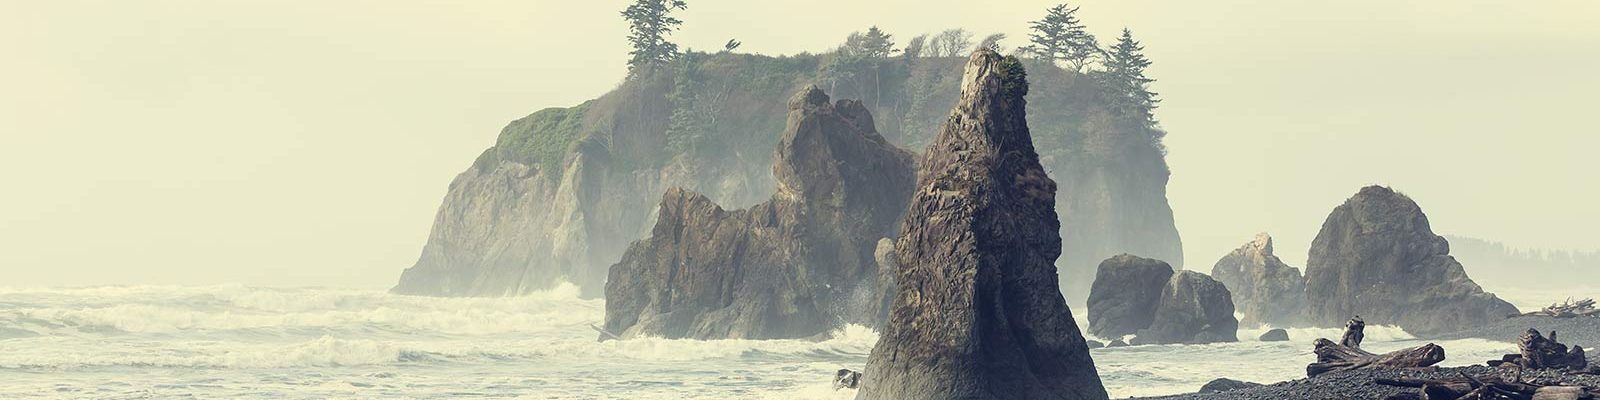 olympic national park cosa vedere